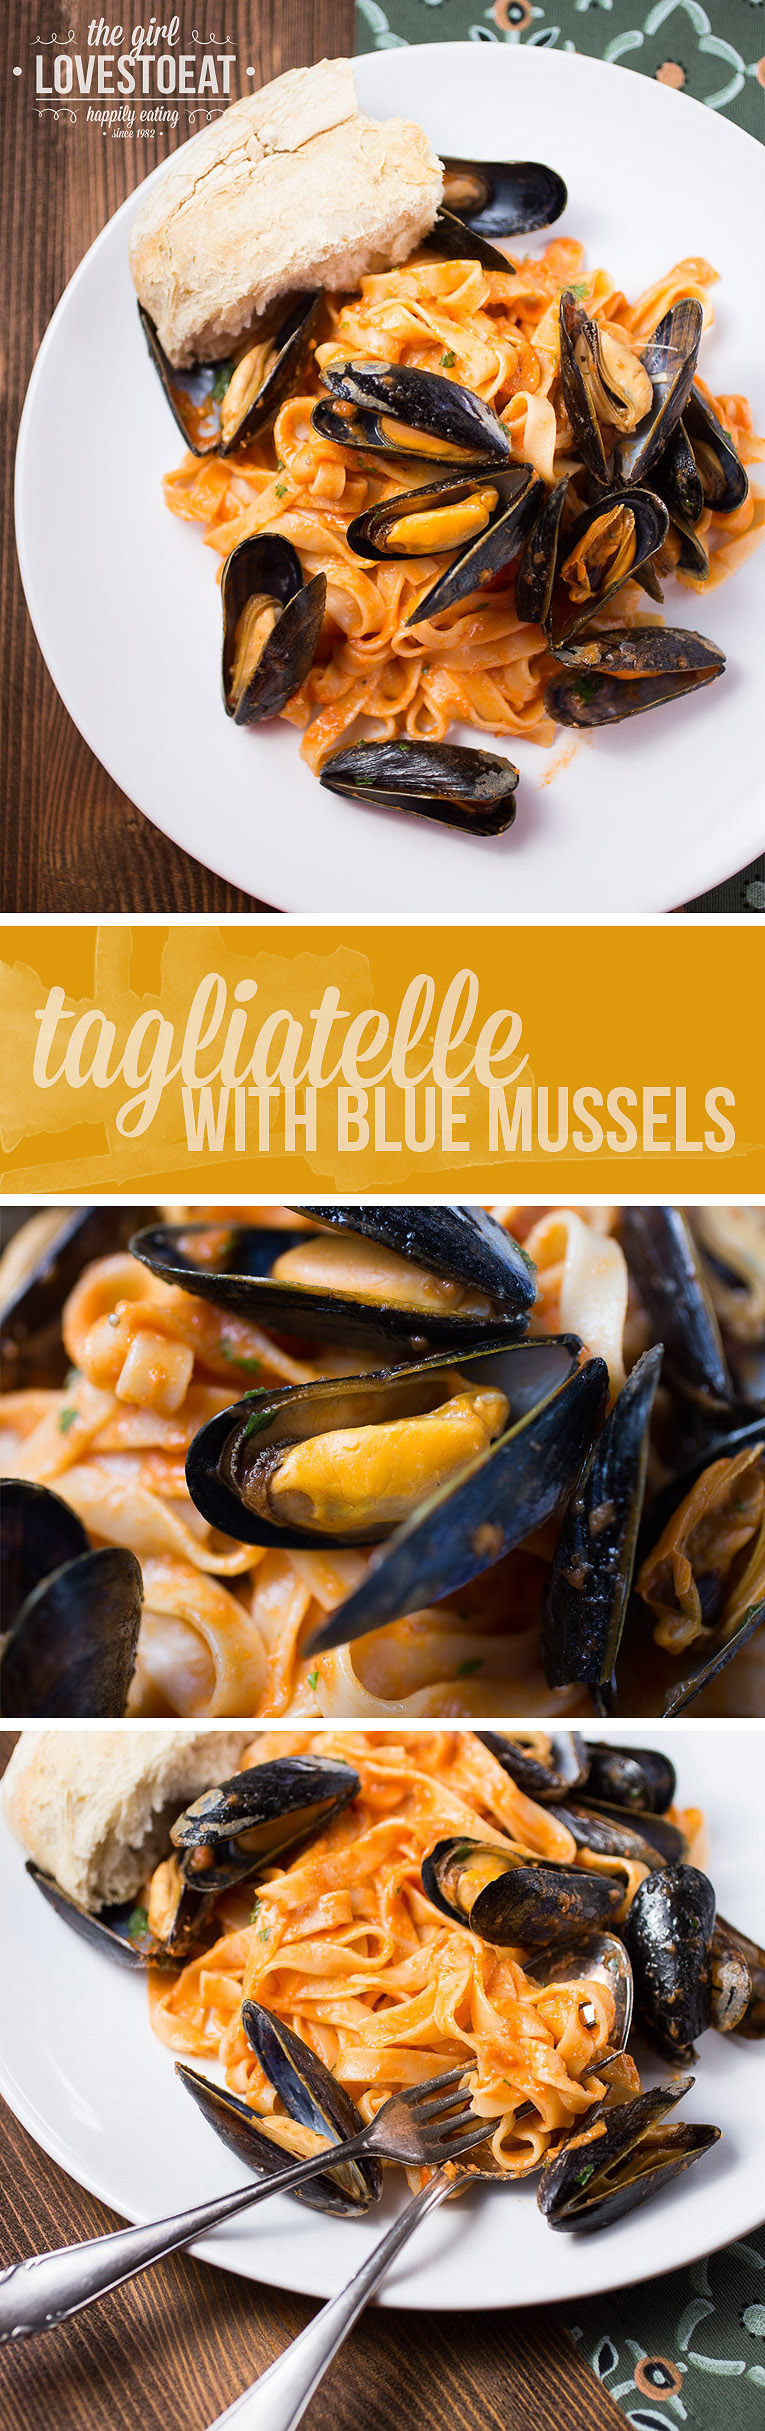 Tagliatelle with blue mussels {The Girl Loves To Eat}